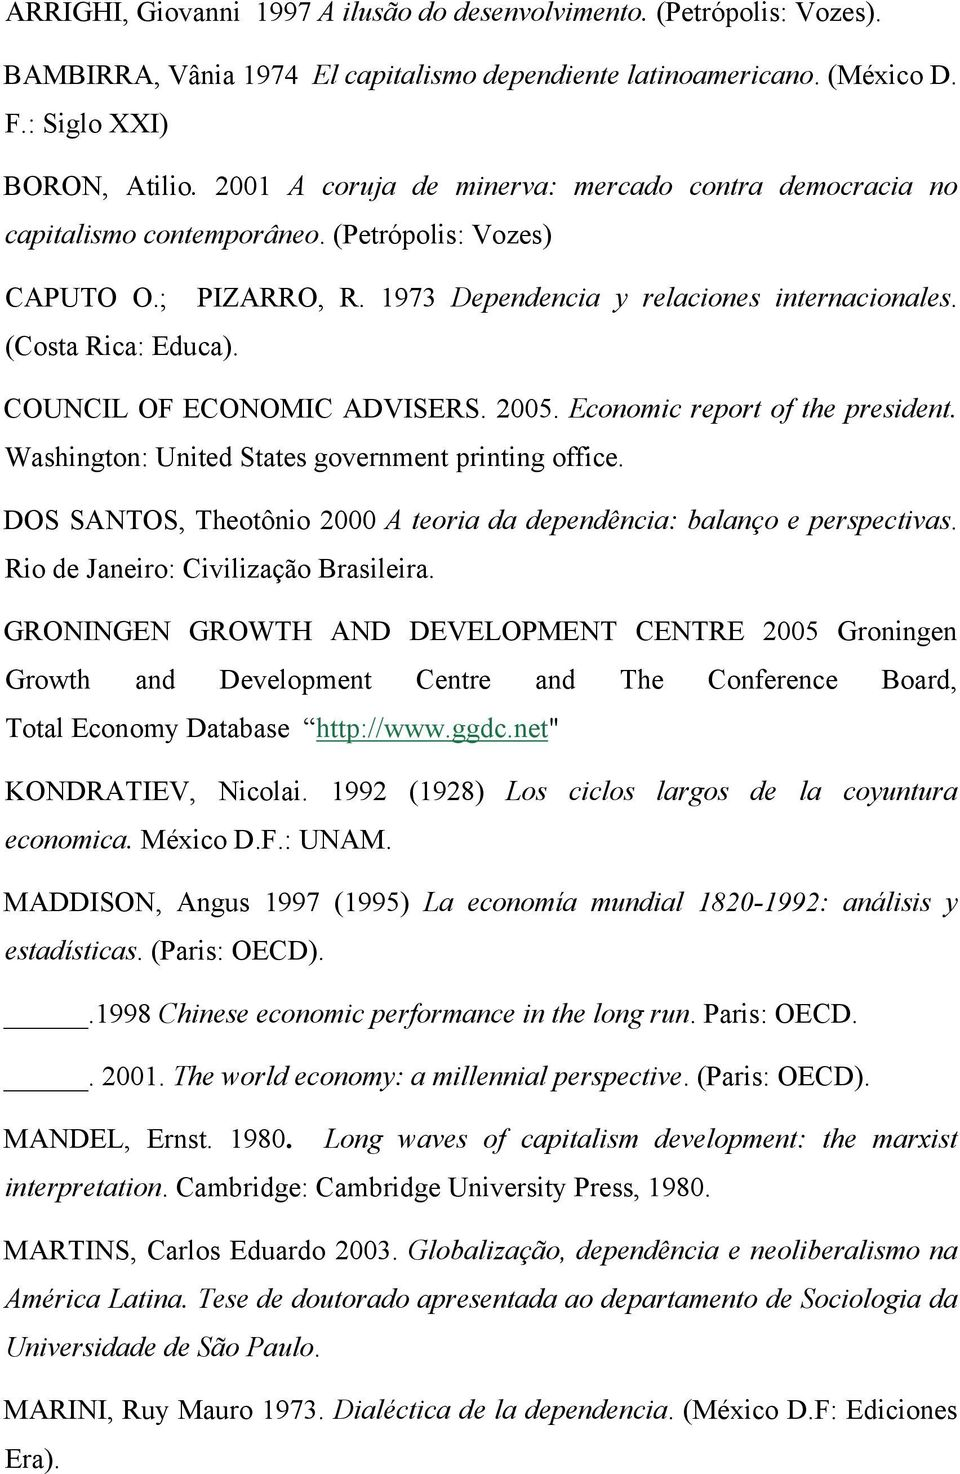 COUNCIL OF ECONOMIC ADVISERS. 2005. Economic report of the president. Washington: United States government printing office. DOS SANTOS, Theotônio 2000 A teoria da dependência: balanço e perspectivas.